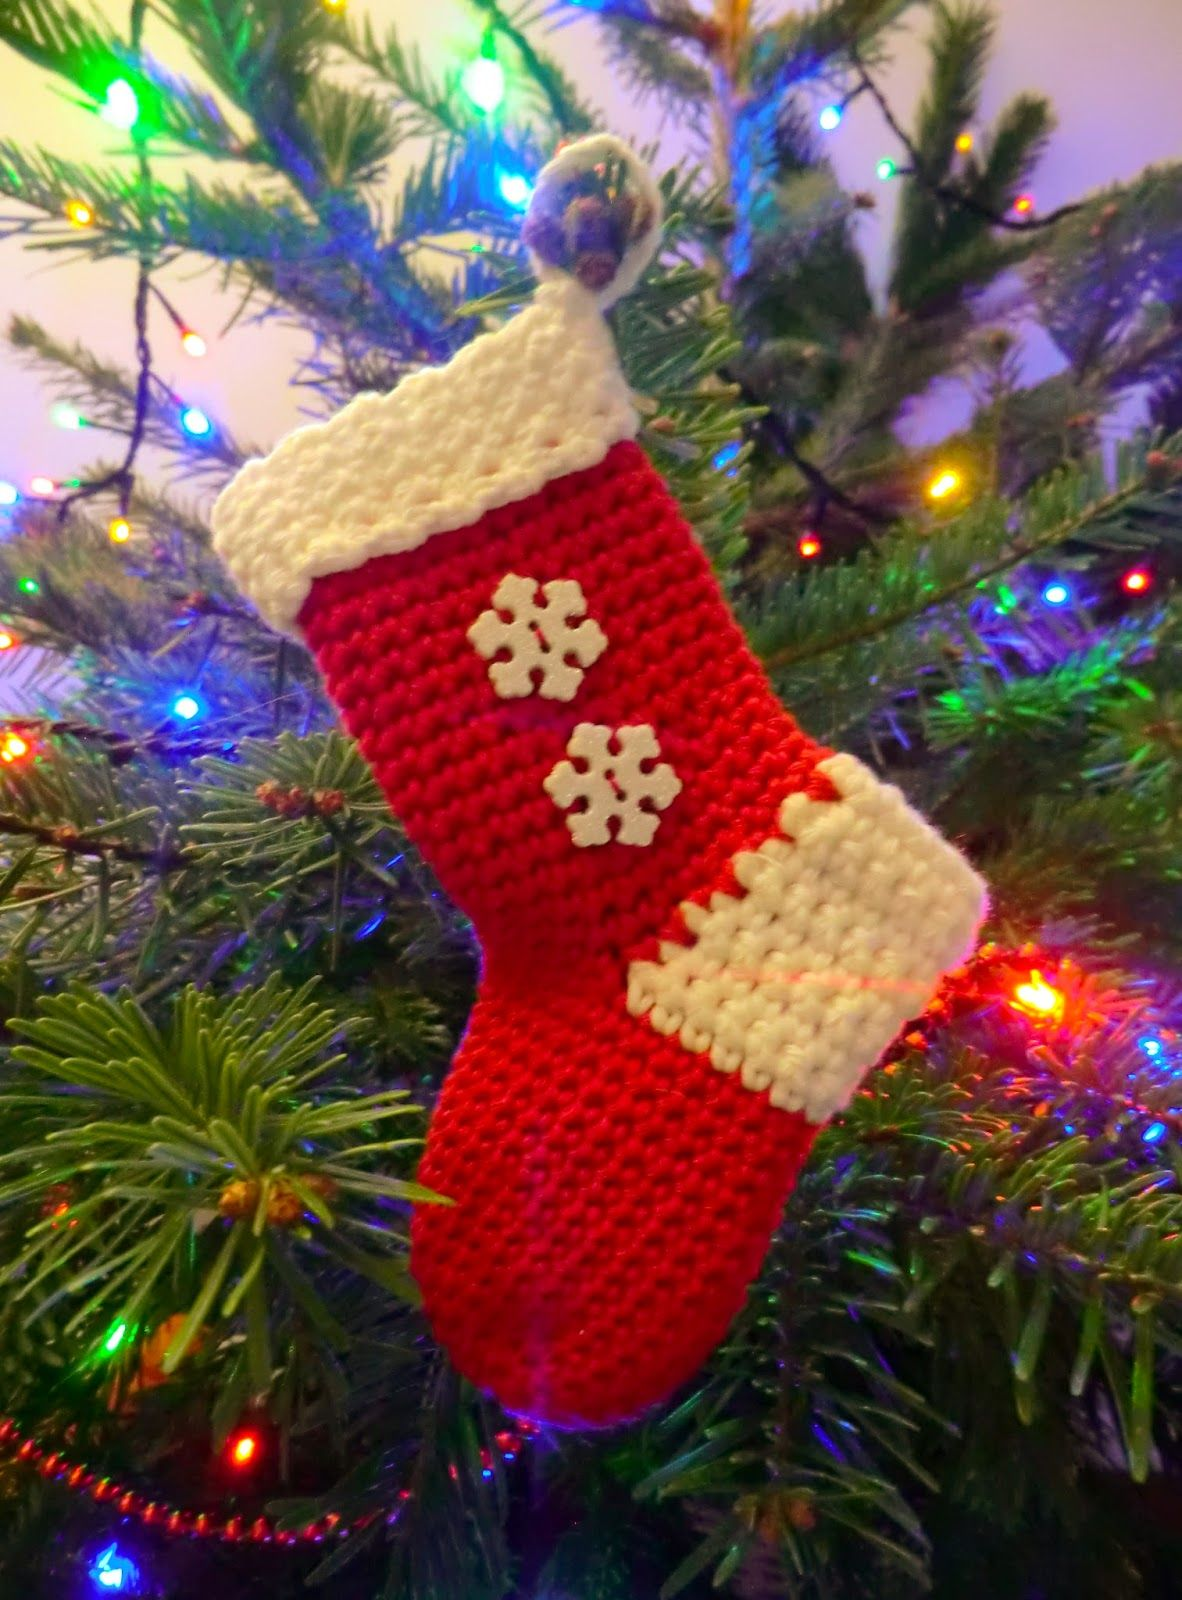 Christmas Stocking ~ Amigurumi Barmy | Crochet Christmas | Pinterest ...